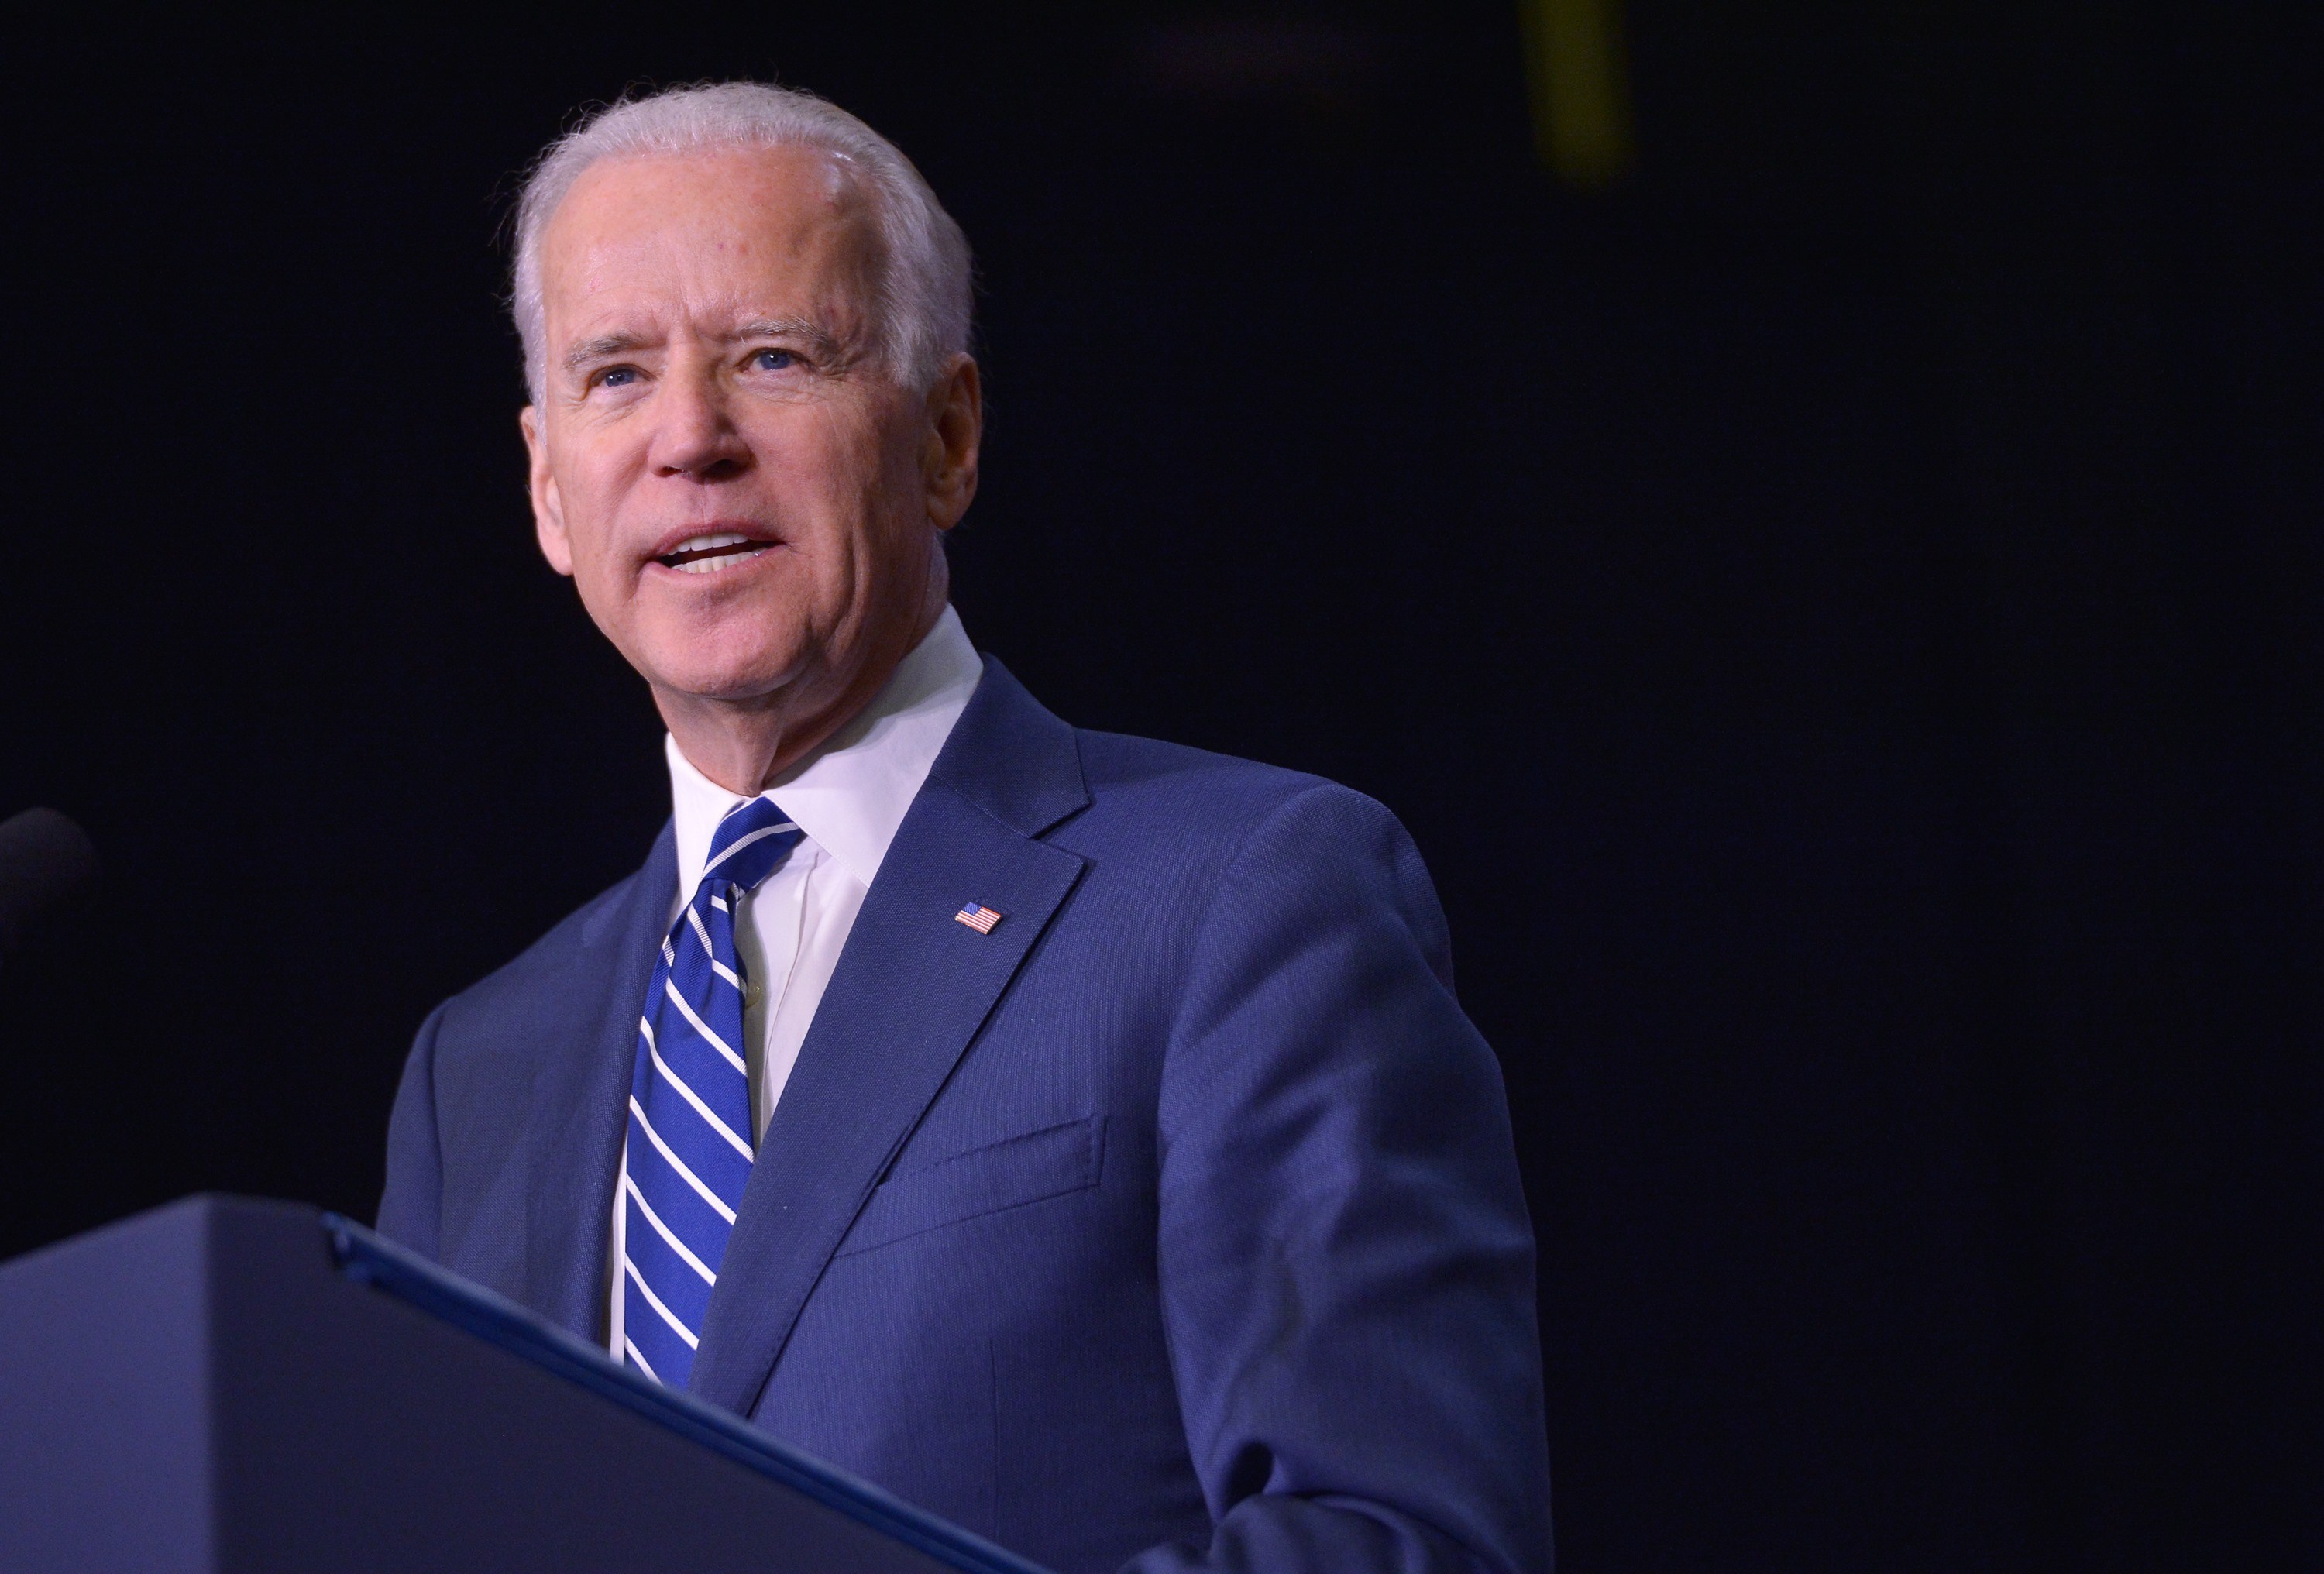 Biden Accused by Two More Women of Uncomfortable Touches